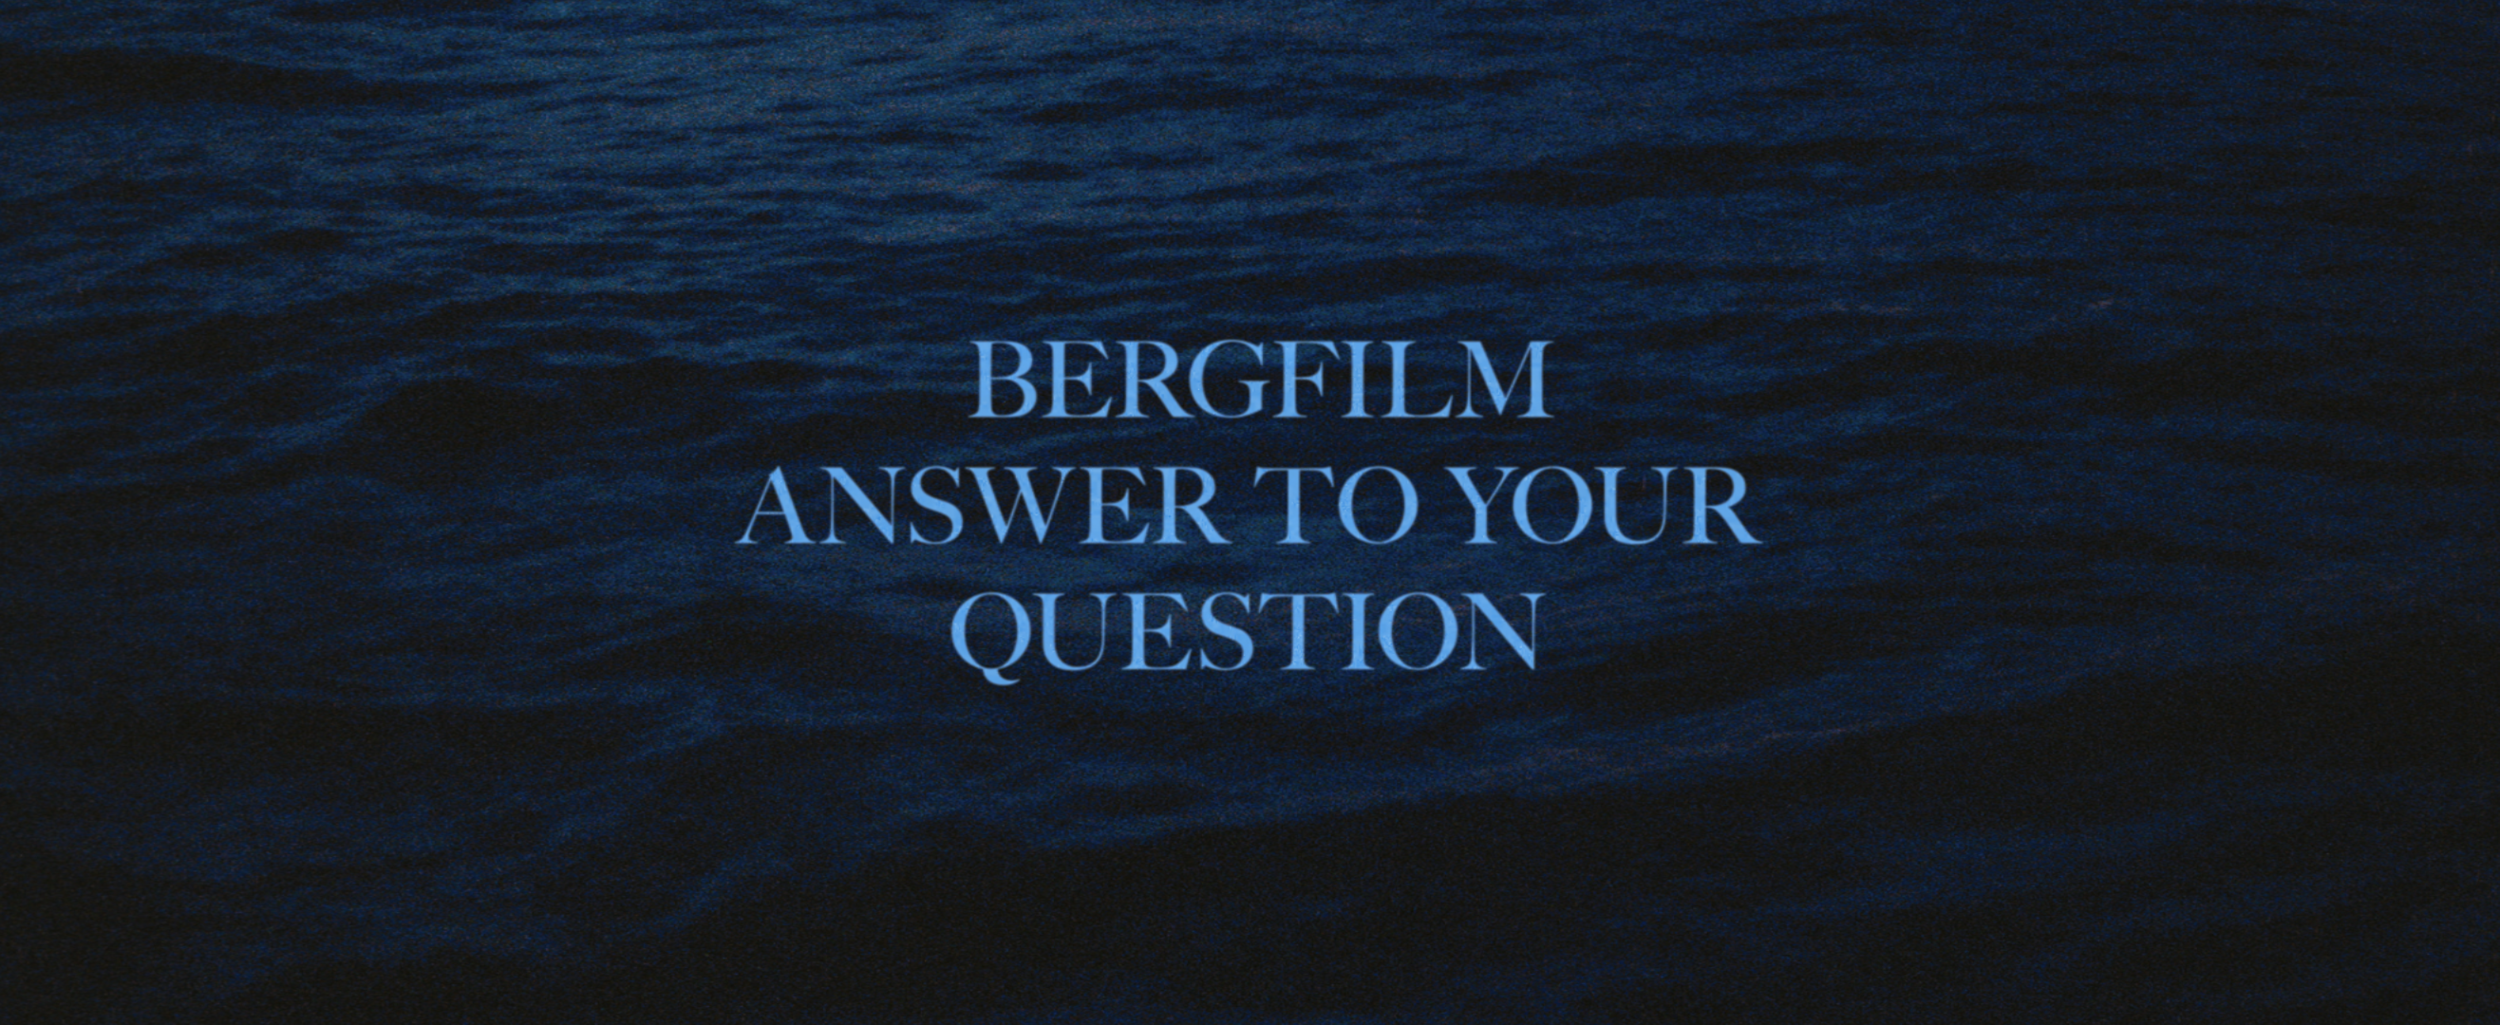 Bergfilm_AnswerToYourQuestion_Title_1.png